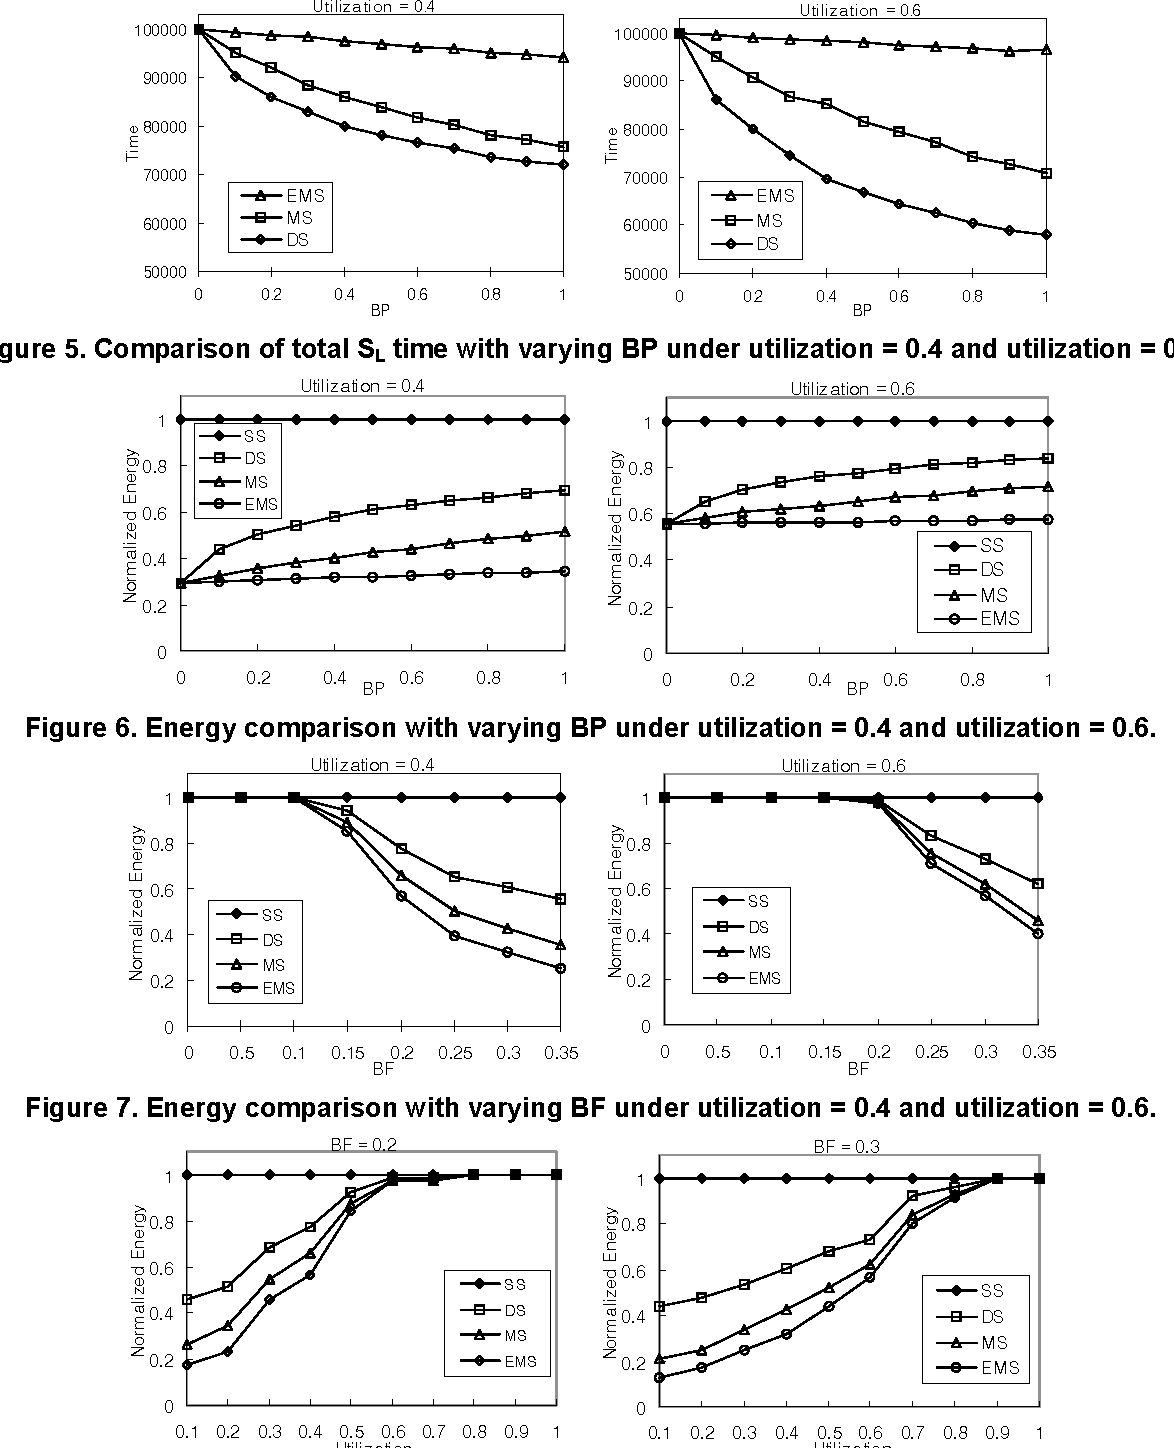 Figure 5. Comparison of total SL time with varying BP under utilization = 0.4 and utilization = 0.6.